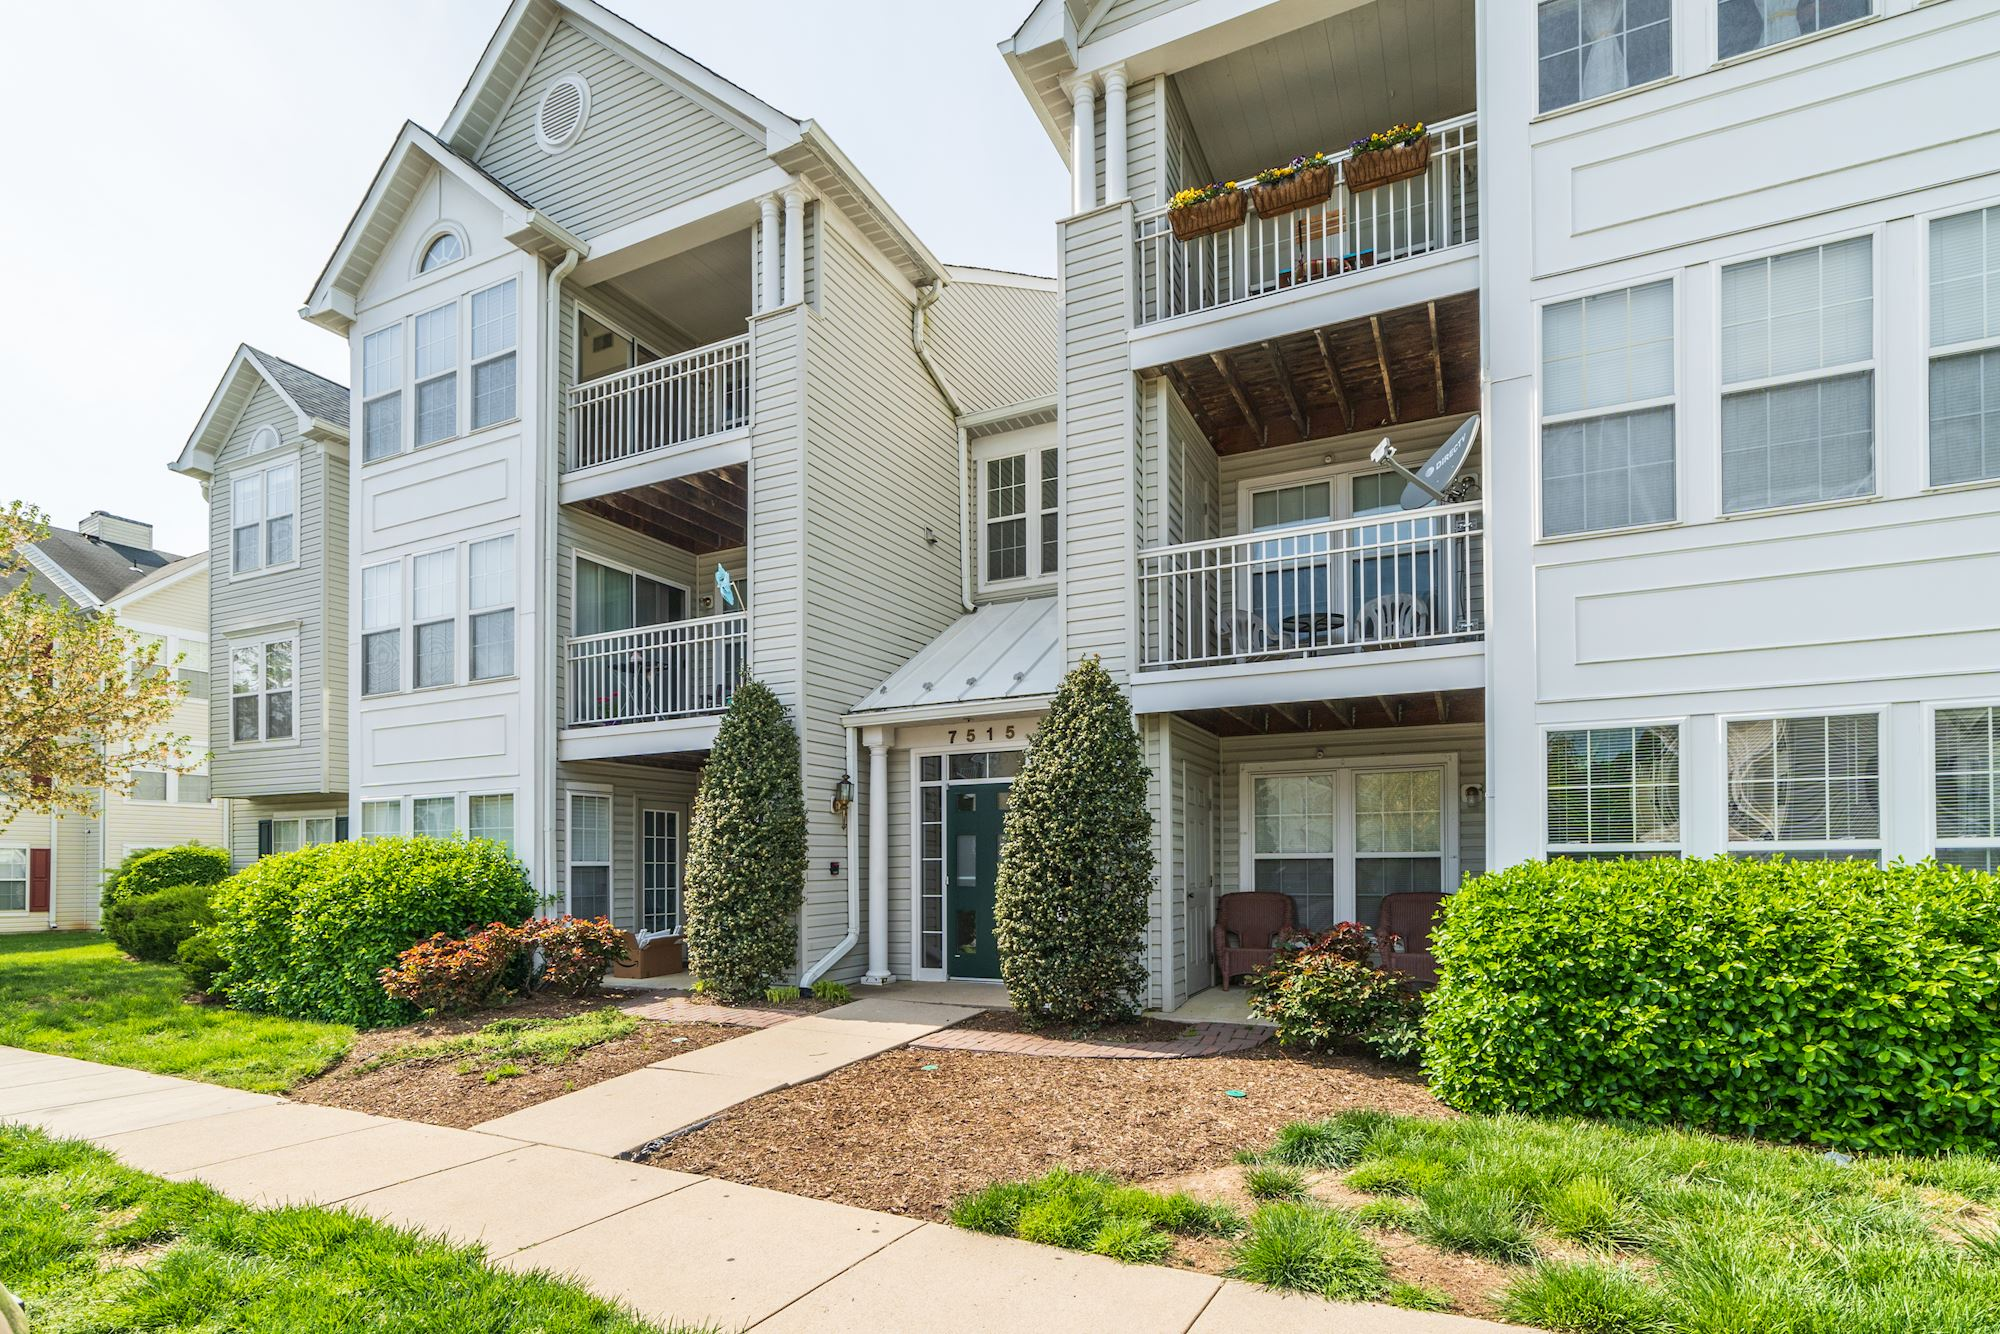 7515 Snowpea Court, Unit J | Alexandria, VA    Sold for $275,000